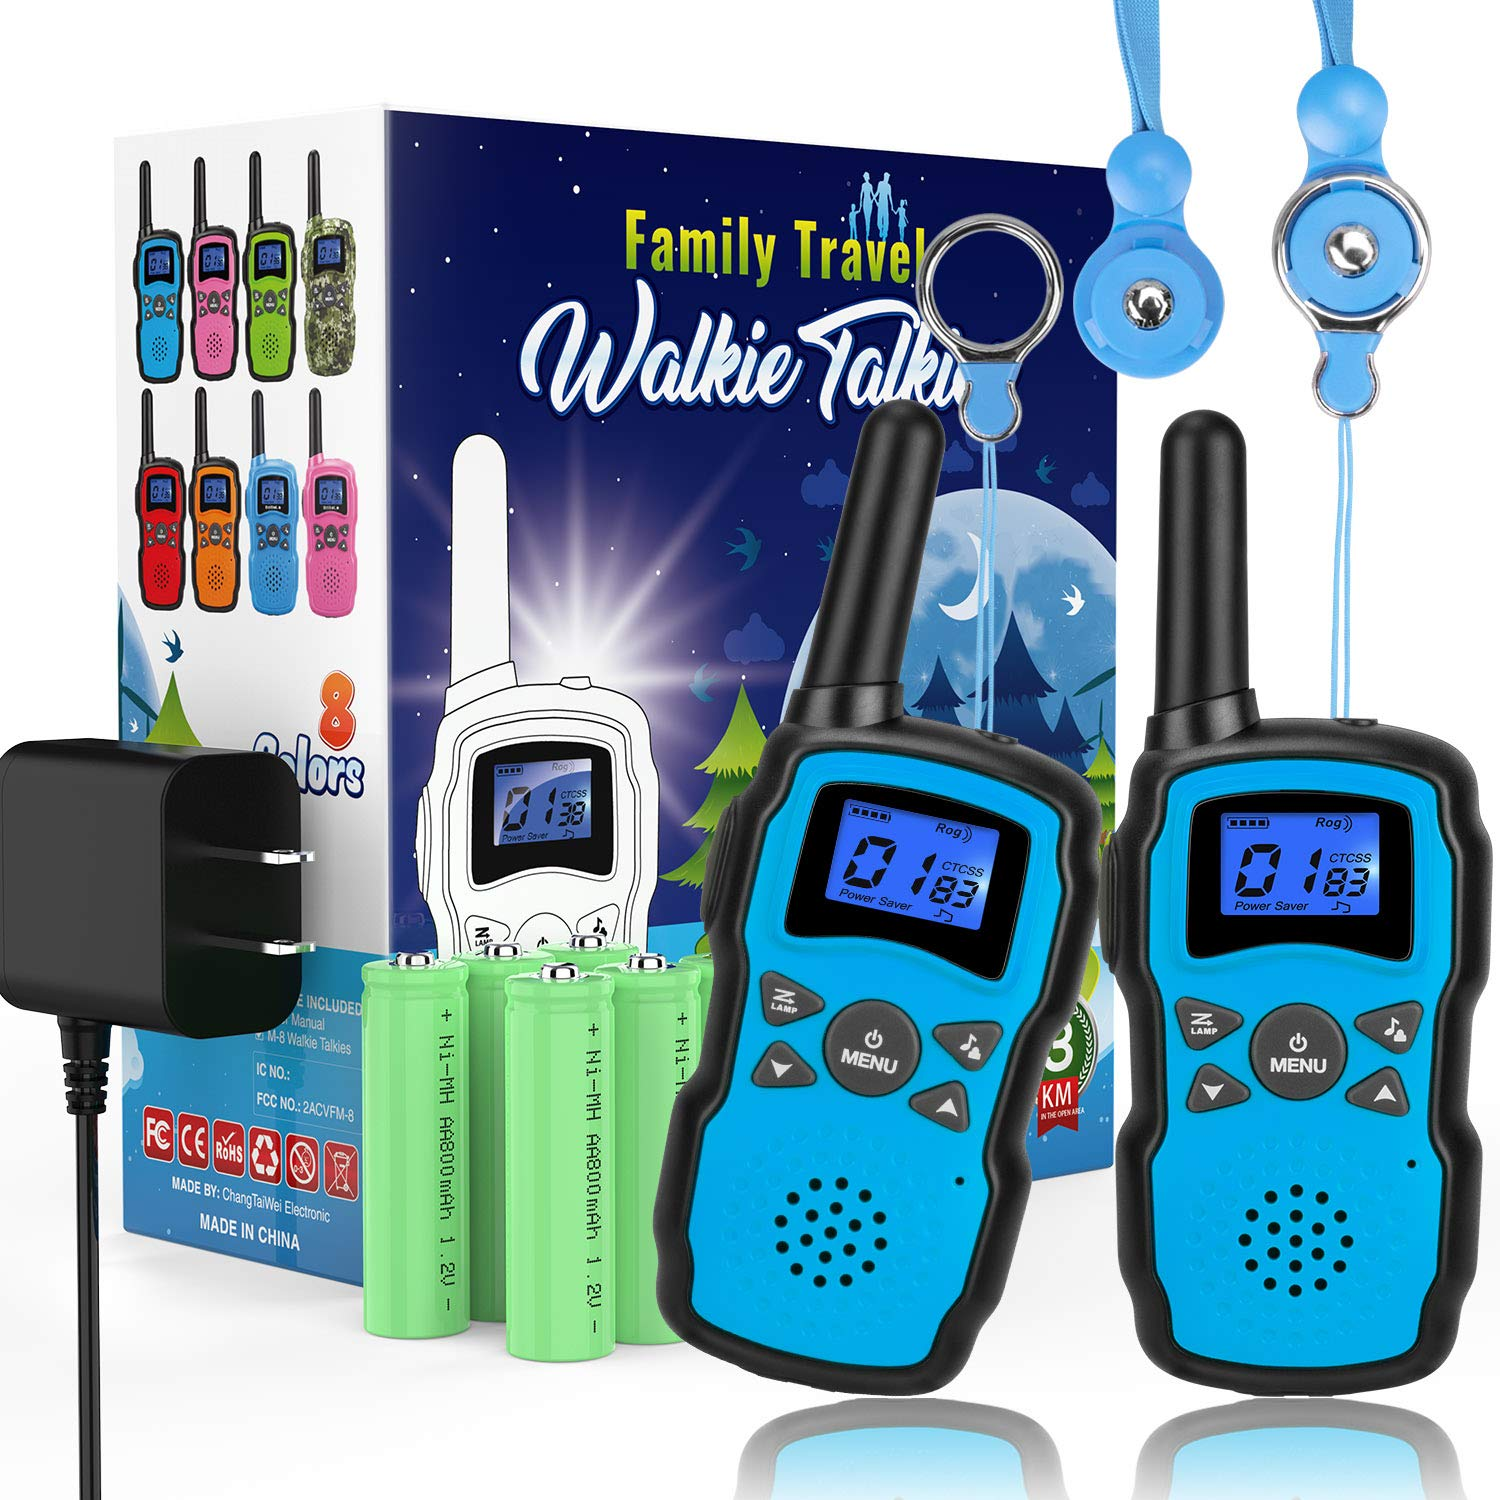 Wishouse 2 Rechargeable Walkie Talkies for Kids with Charger Battery, Two Way Radio Family Talkabout for Adult Cruise Ship Long Range, Outdoor Camping Hiking Fun Toys Birthday Gift for Girls Boys Blue by Wishouse (Image #1)